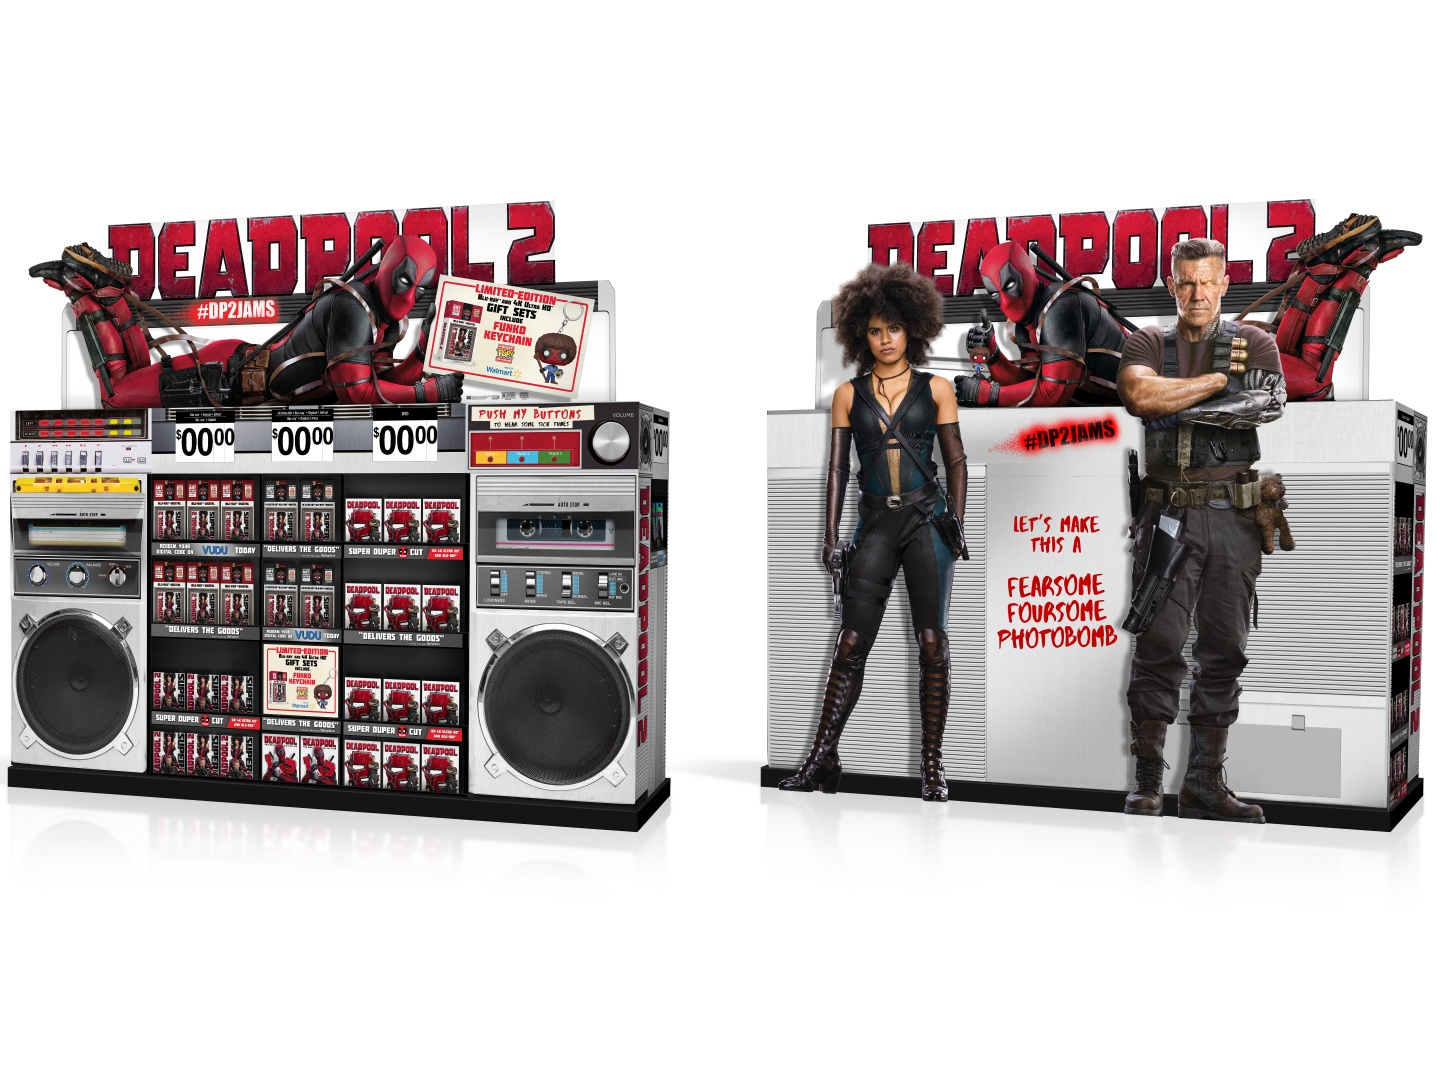 DEADPOOL 2 Home Entertainment Display: WM WOW Boombox Thumbnail